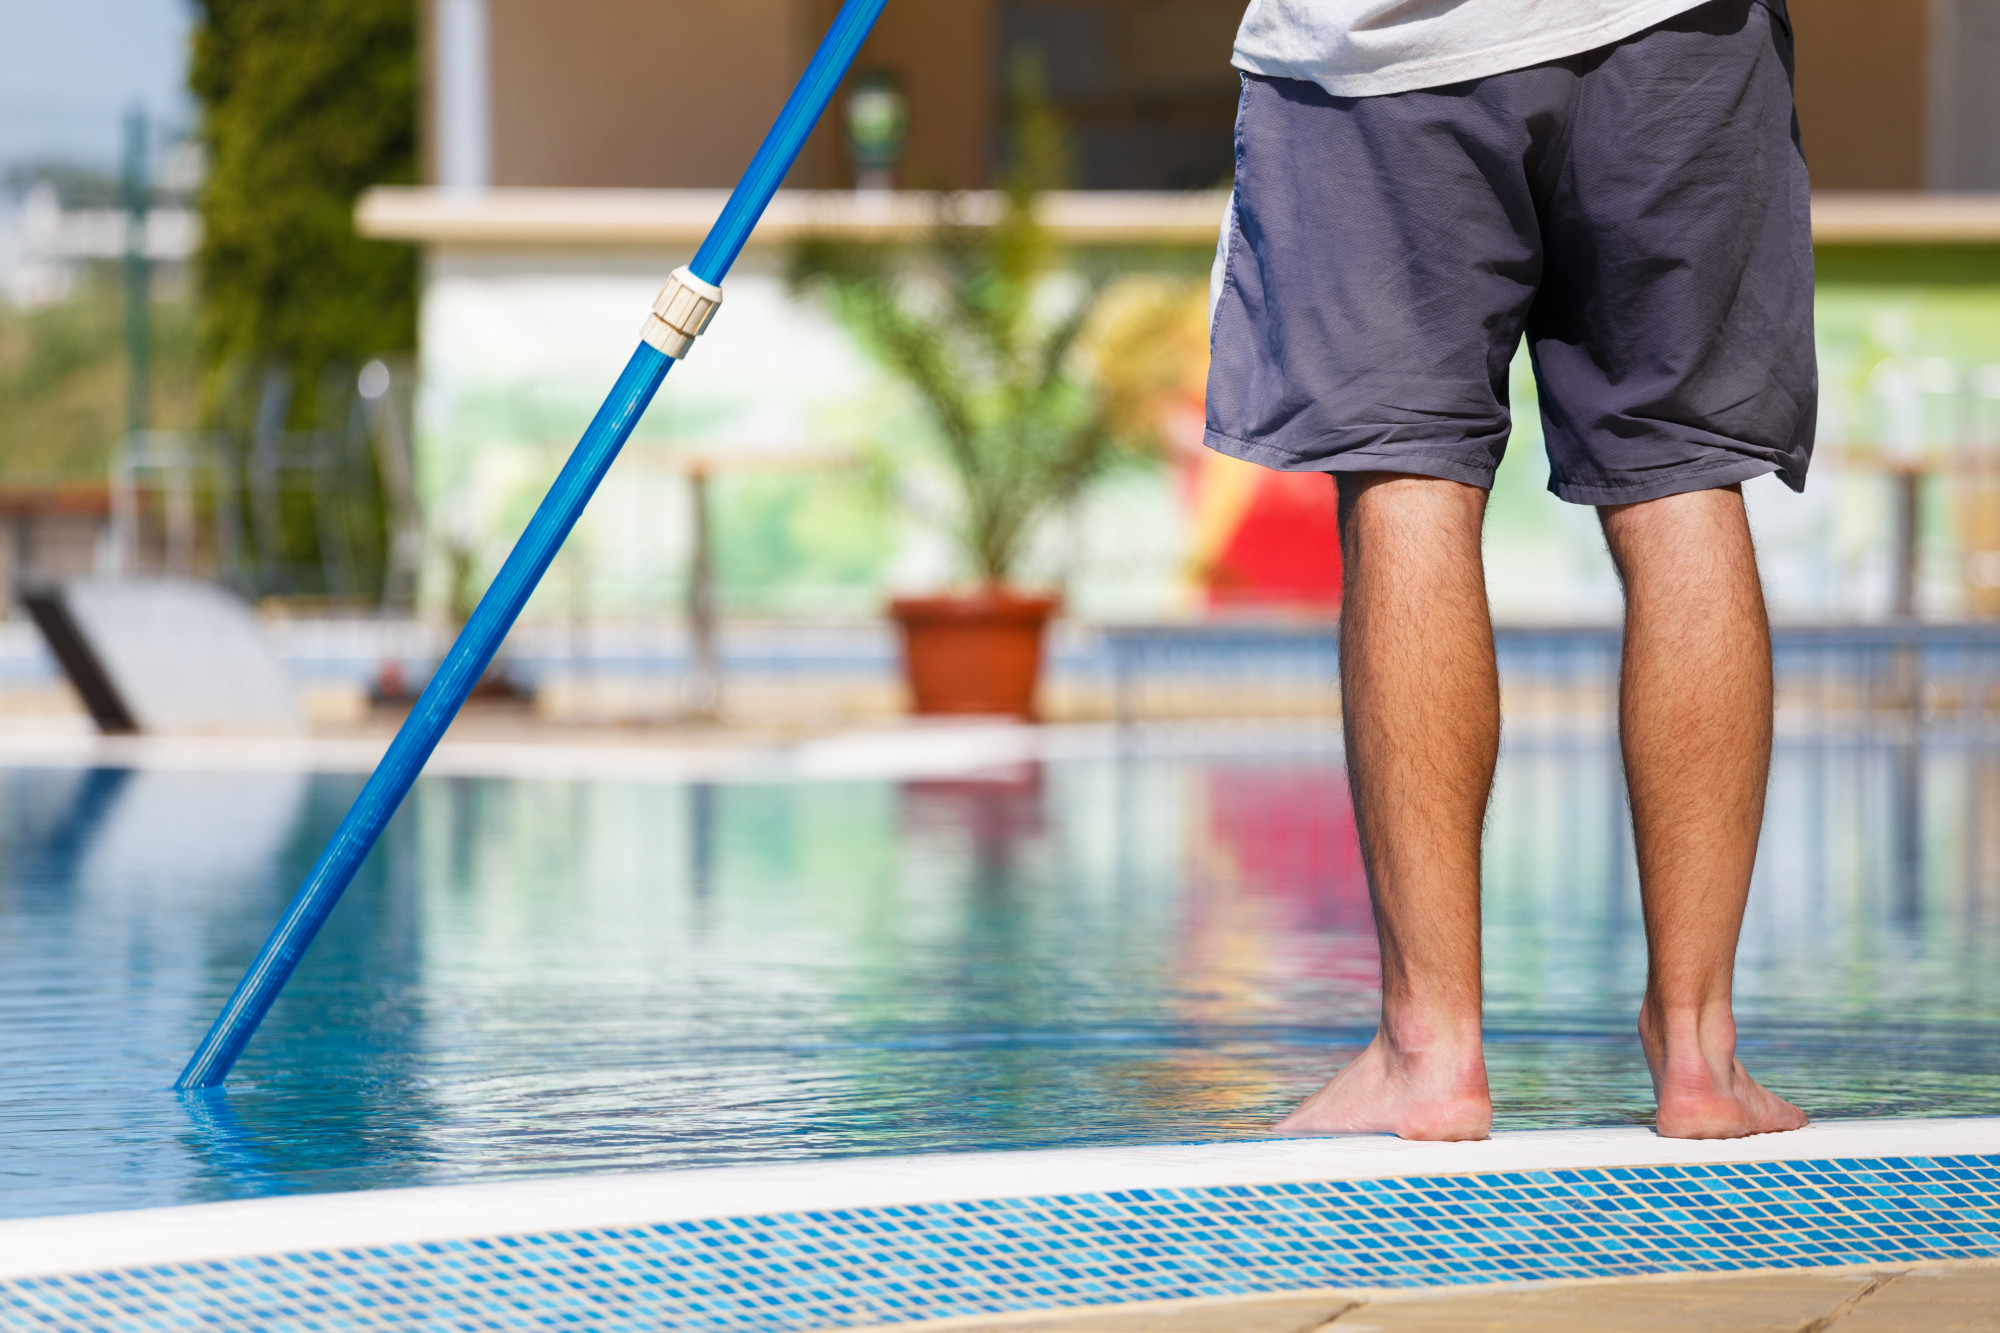 Your backyard and pool are your oasis, make sure it is safe. Read this article for five reasons you should hire a swimming pool cleaning service.